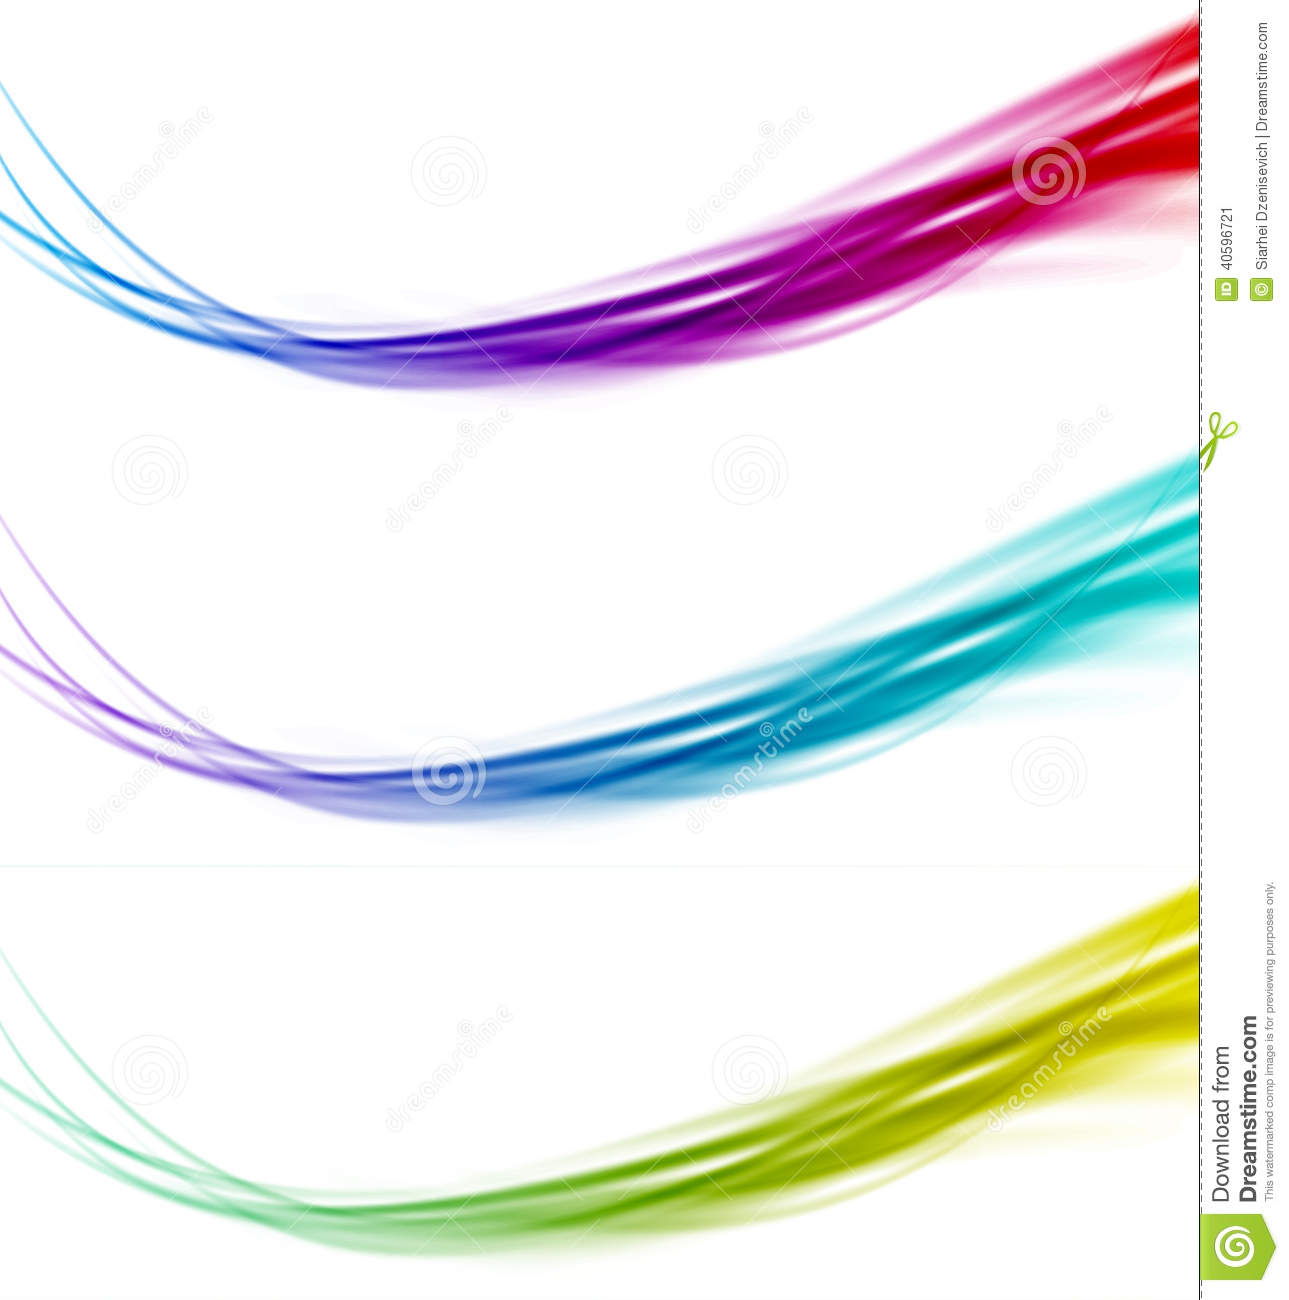 Line Design Clipart Free : Abstract lines vector border frame images